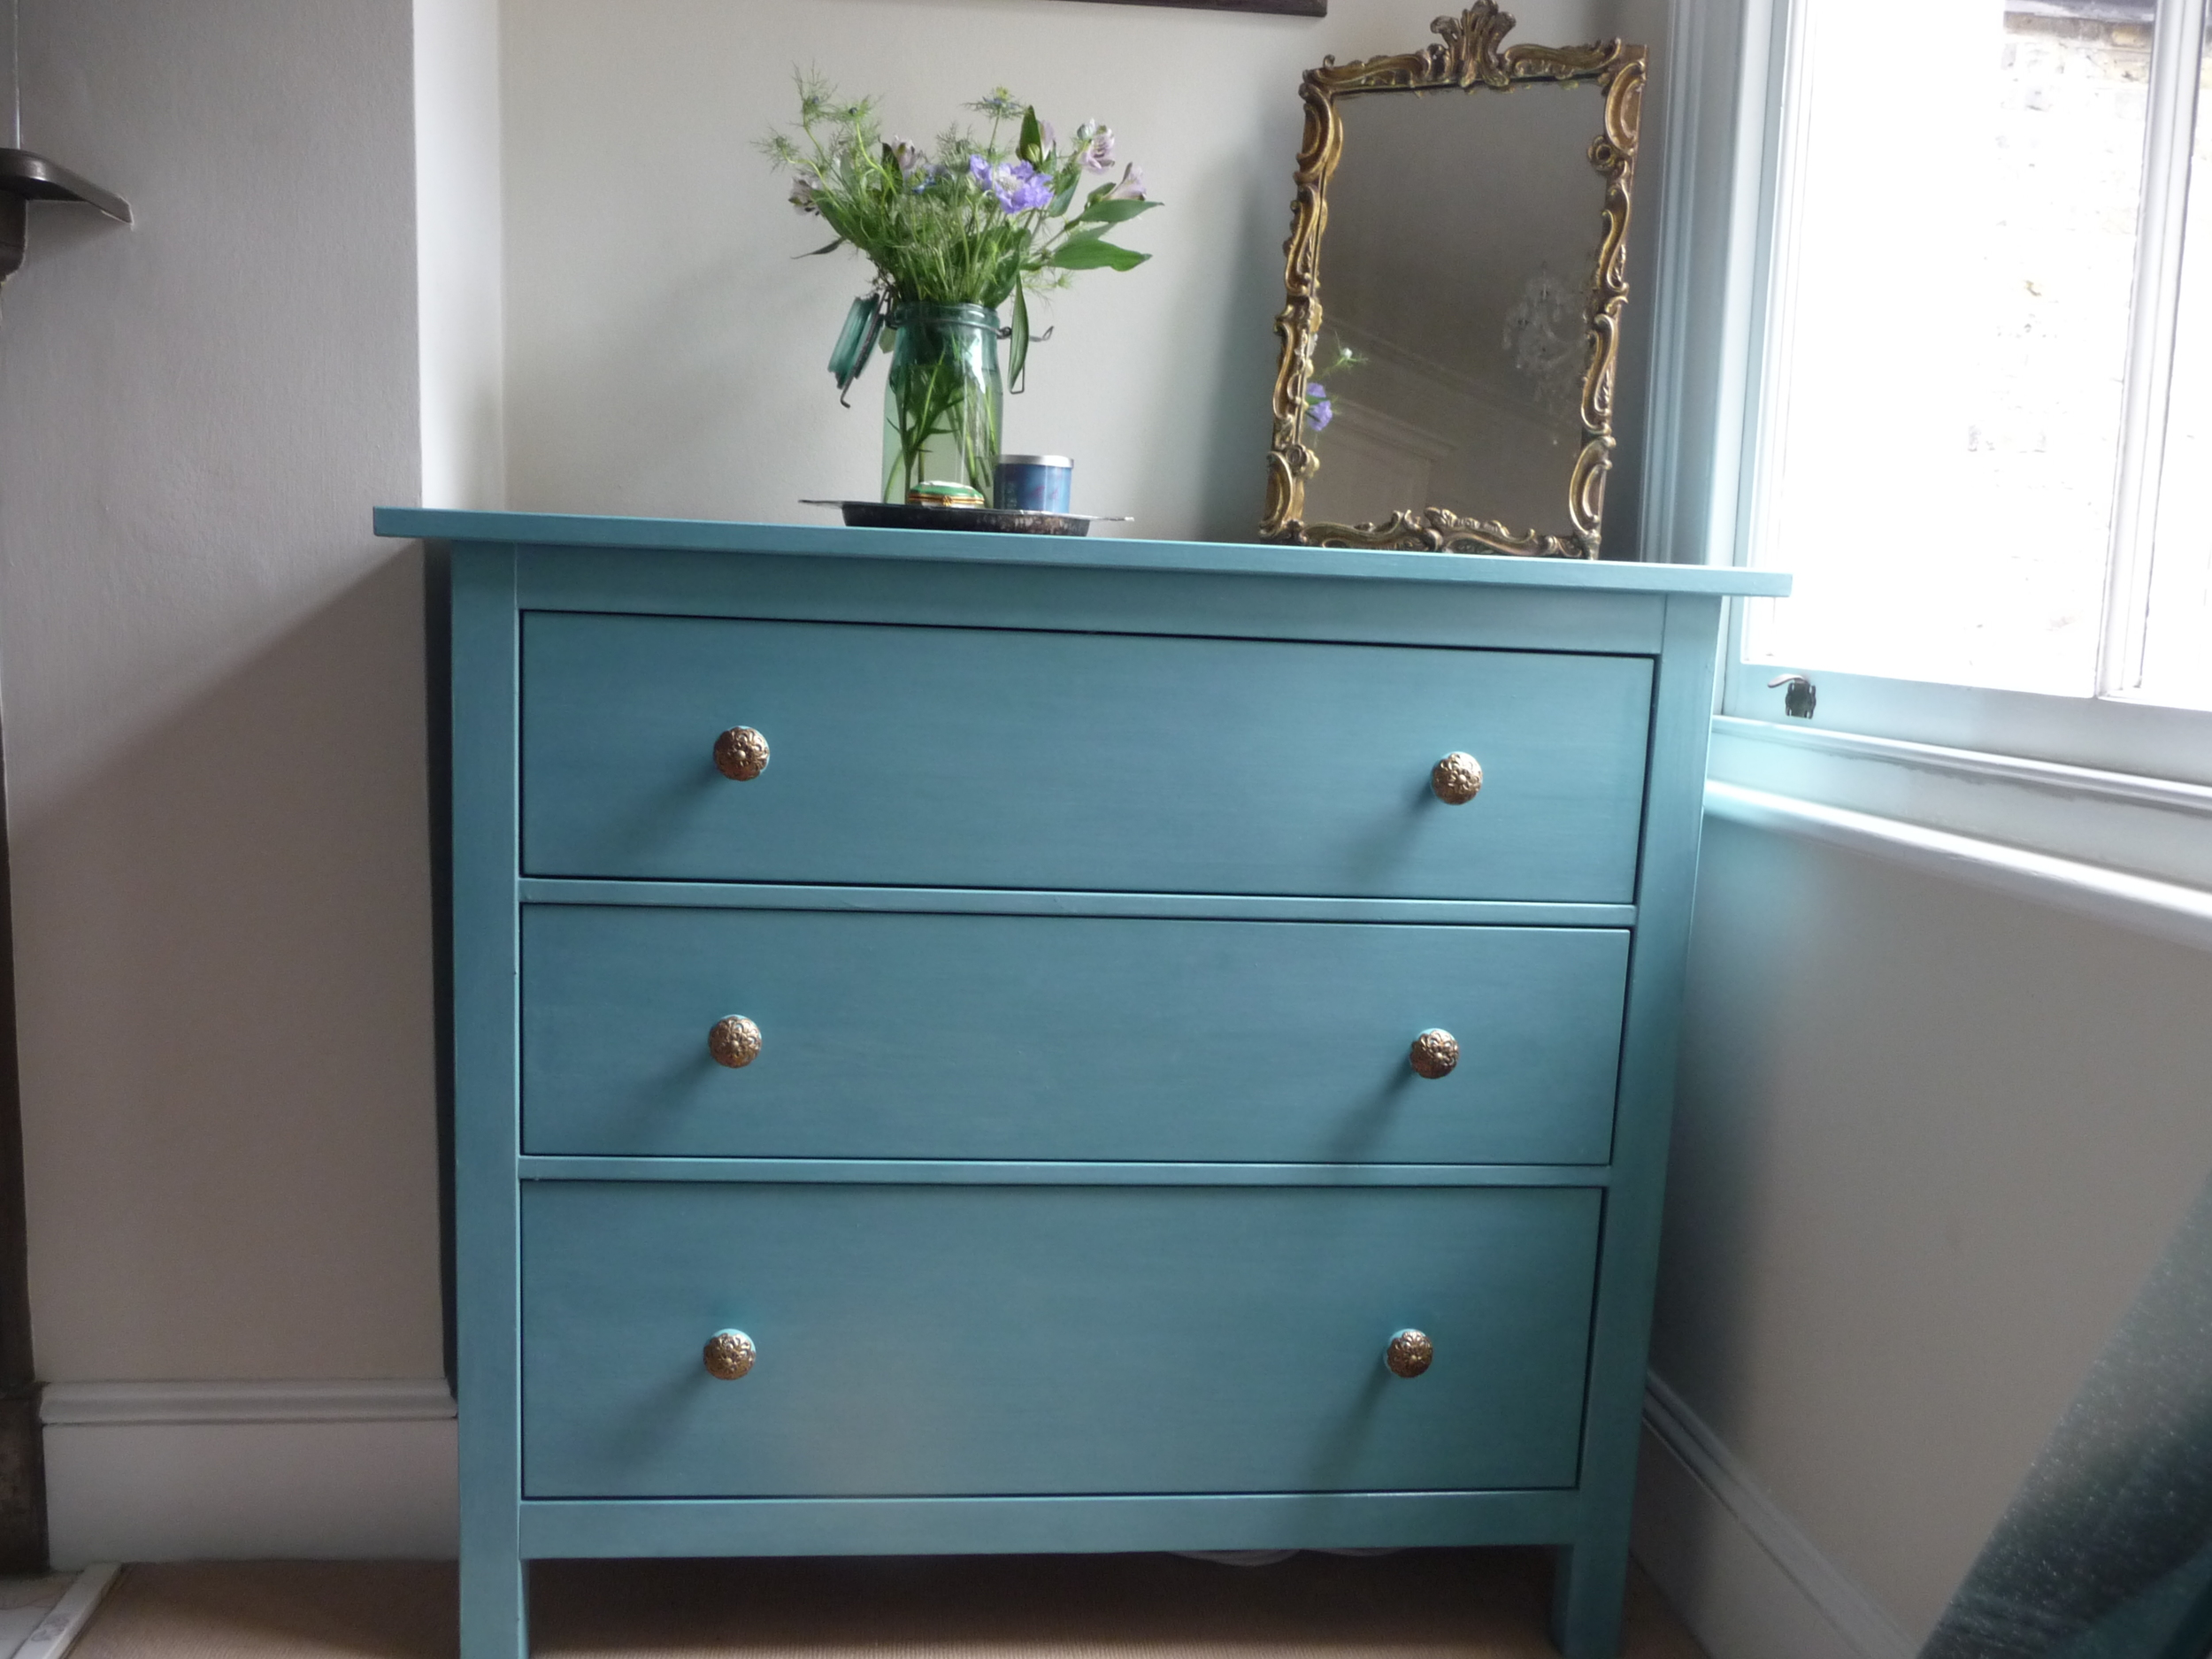 Pintar Mueble Ikea Revive A Chest Of Drawers With Annie Sloan's 'provence